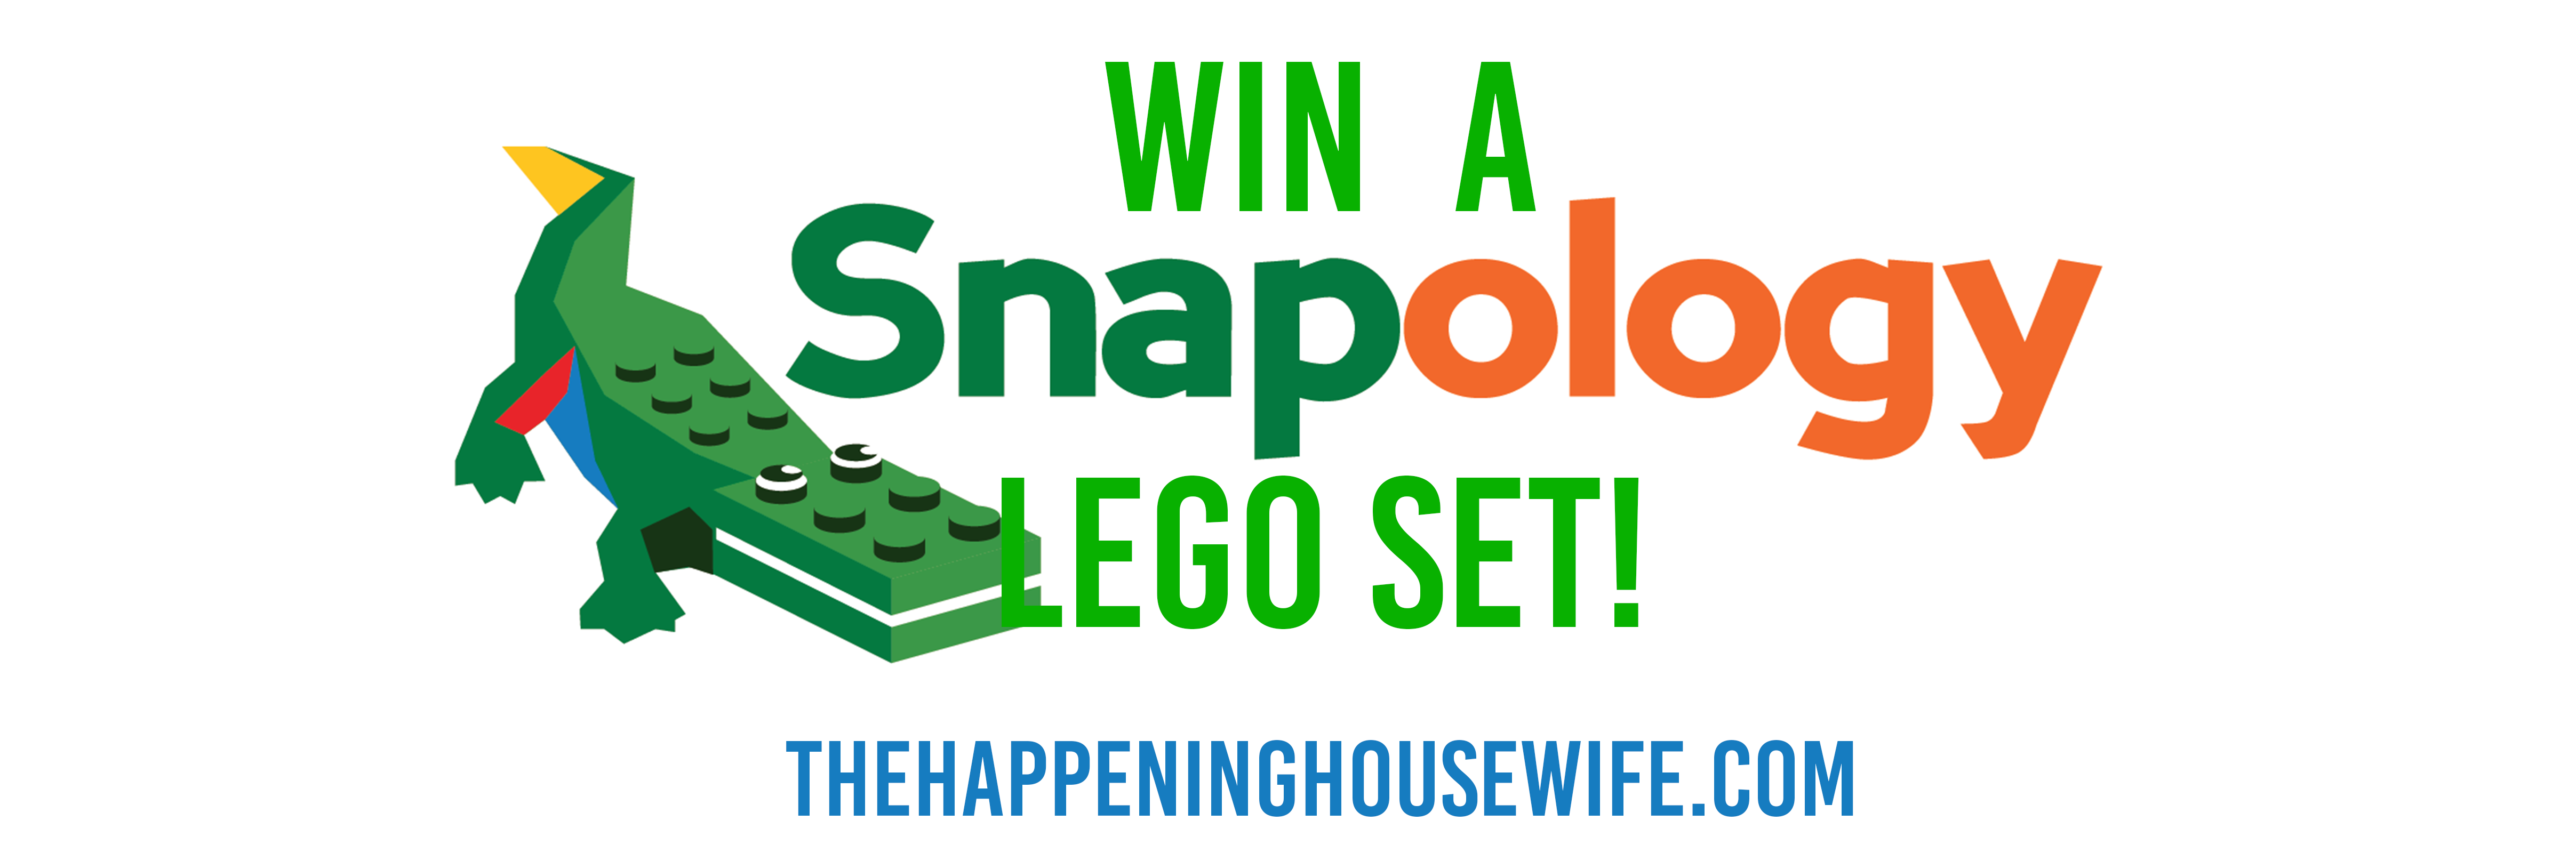 WIn Snapology.png